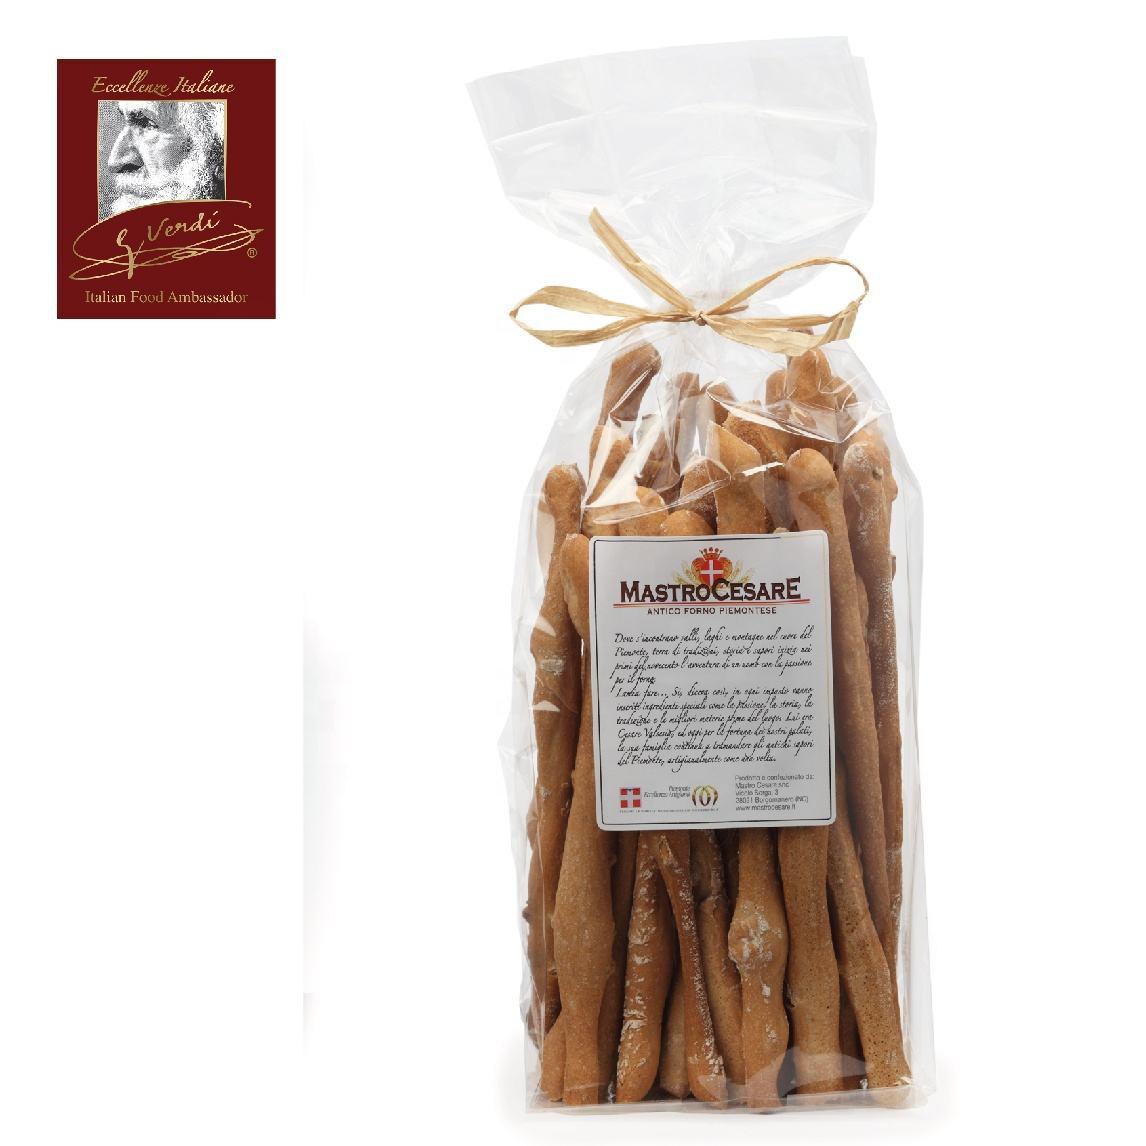 Breadsticks with Walnuts and Nebbiolo Red Wine 280g Grissini Giuseppe Verdi Selection Breadsticks